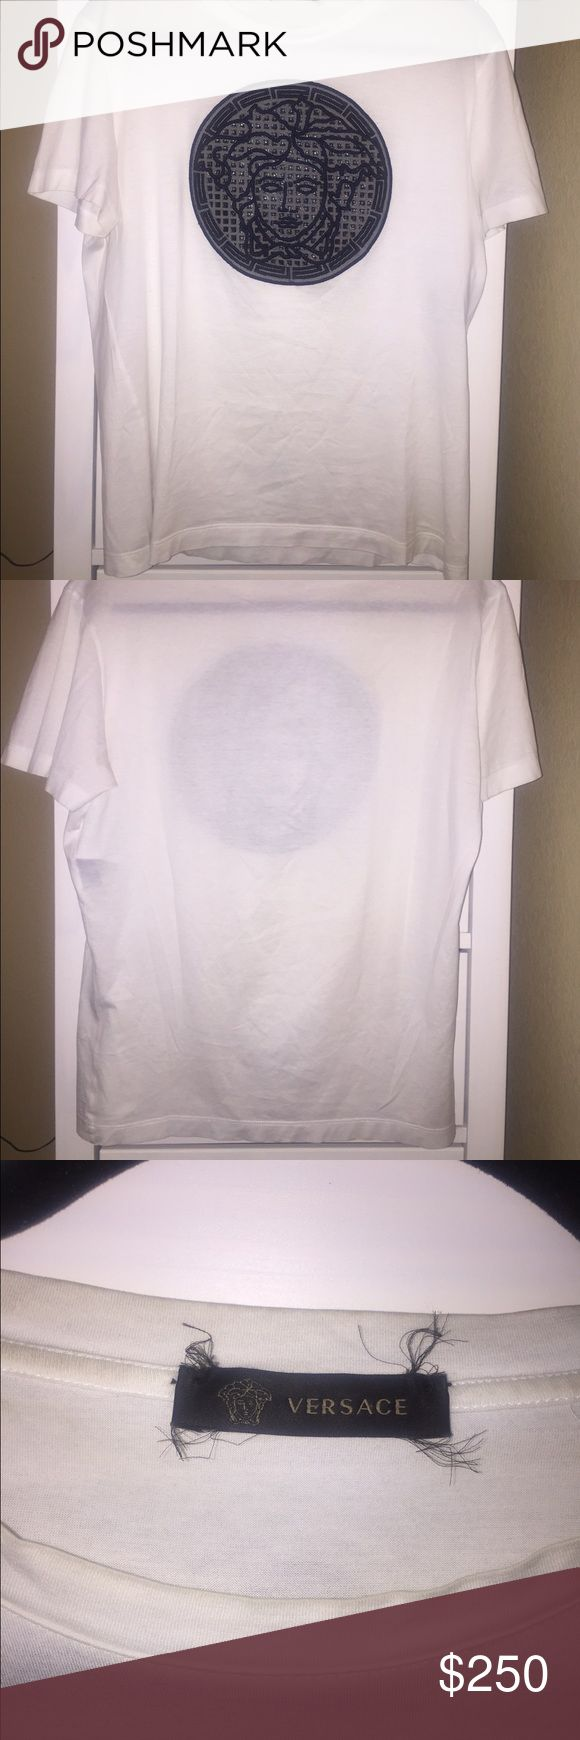 Versace shirt for men I have a nice authentic Versace shirt. The size is M. Worn a couple times. Its in good condition Versace Shirts Tees - Short Sleeve